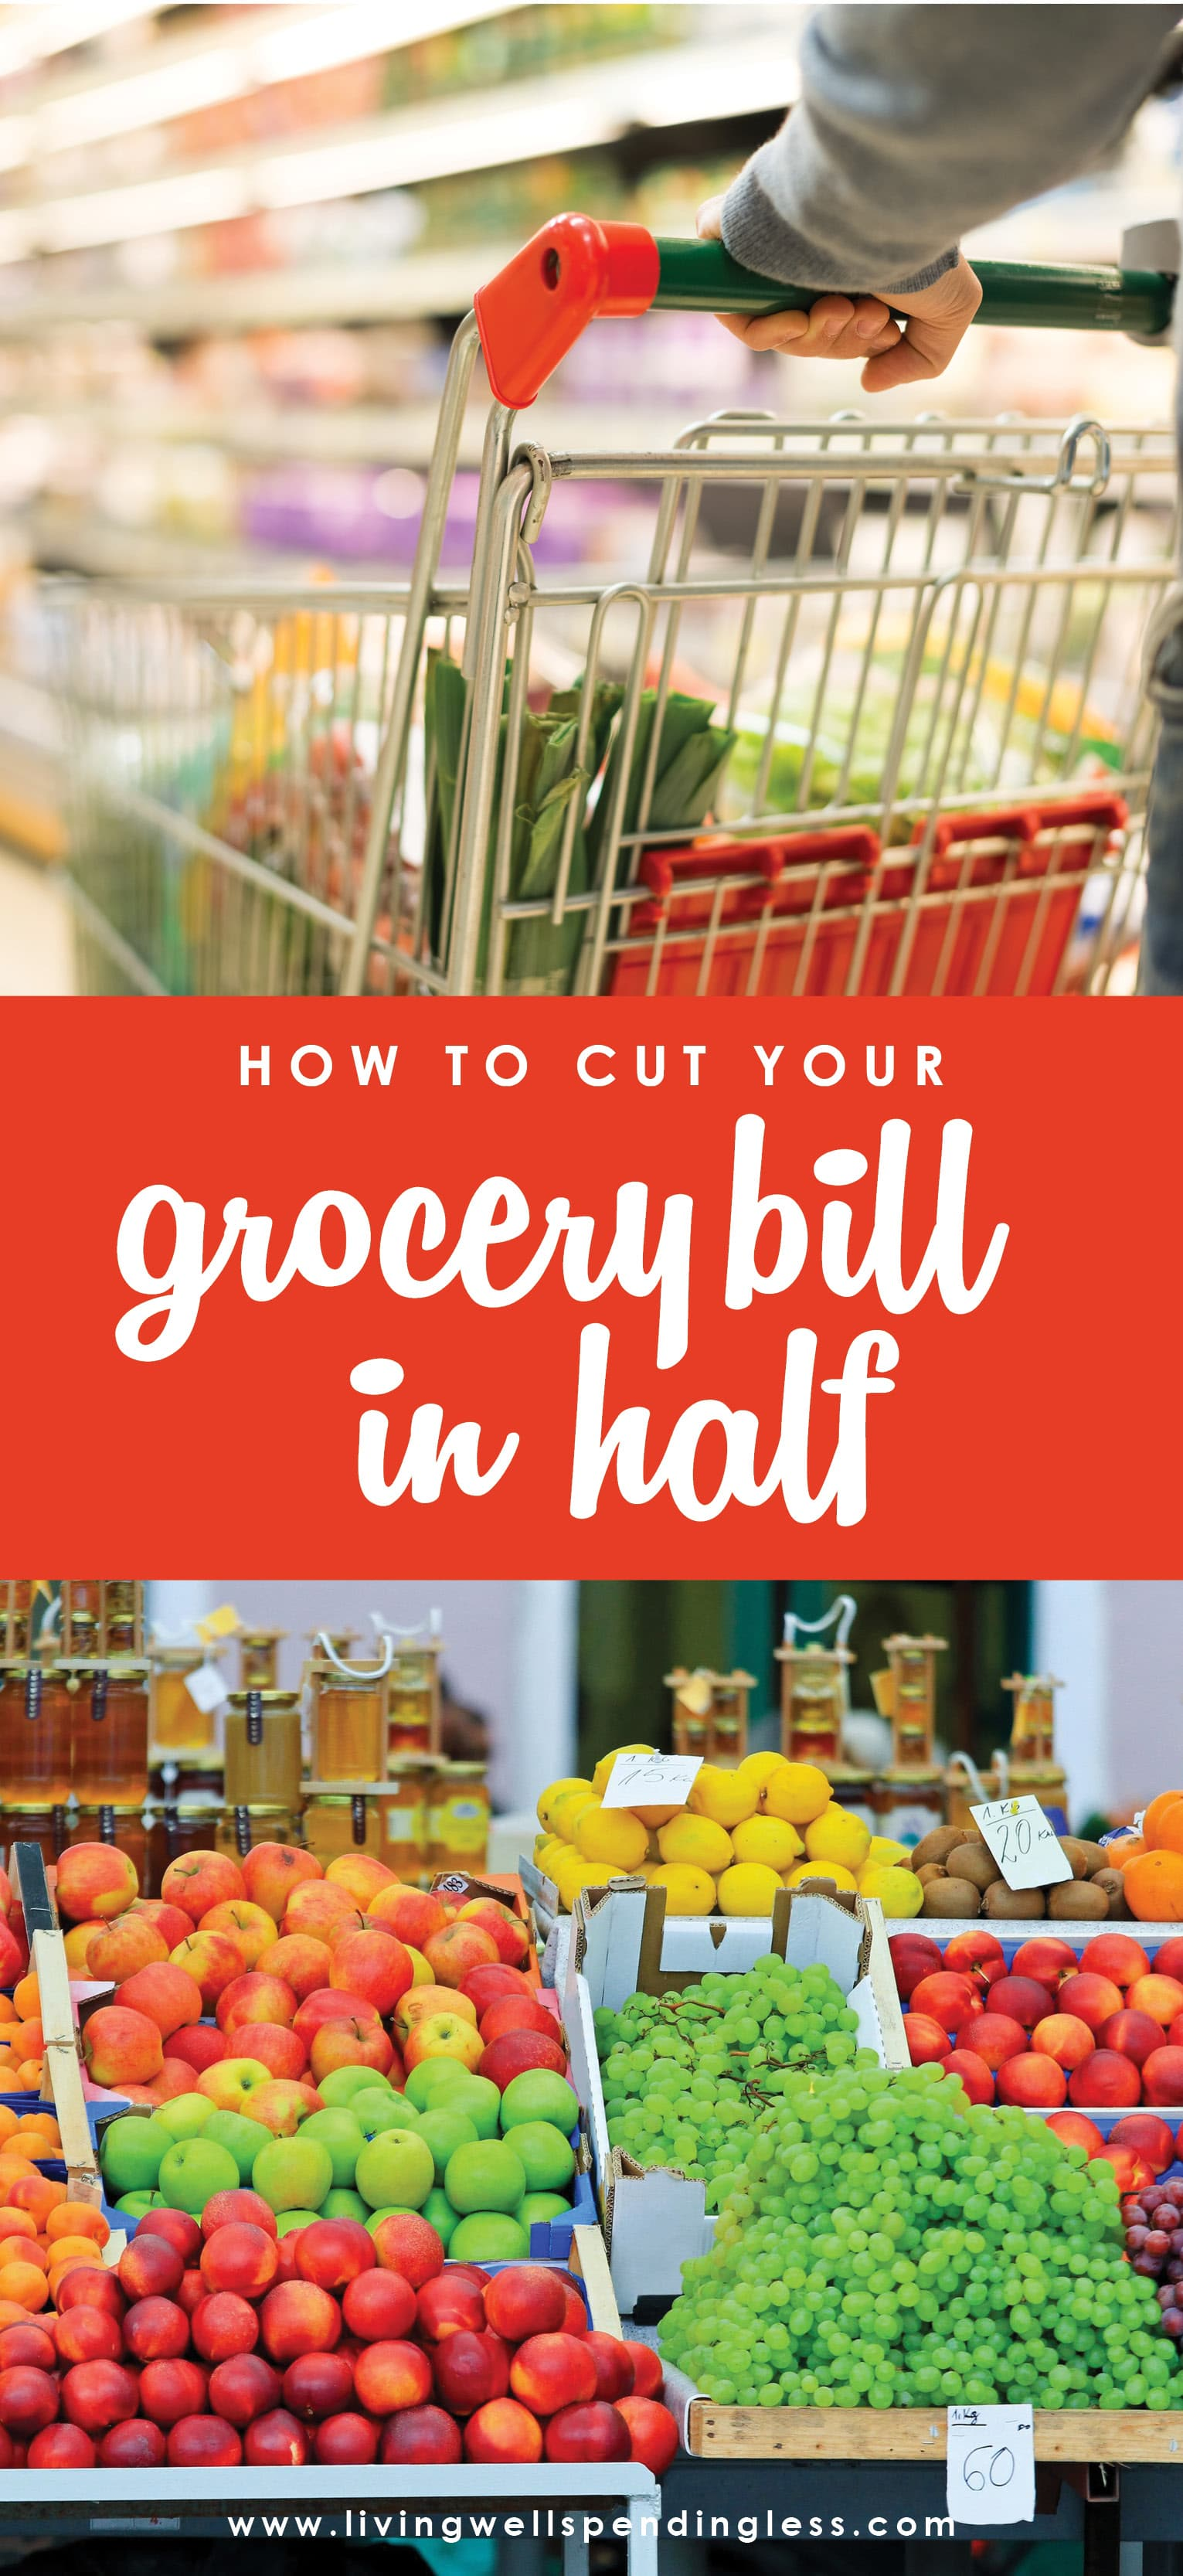 Want to know the secrets to saving big on food? (Spoiler--It's not always using coupons!) These 5 simple strategies can save you hundreds each month on the food your family already buys.   How to Cut Your Grocery Bill in Half | Save Money on Groceries | Money Saving Tips | Spend Less on Groceries